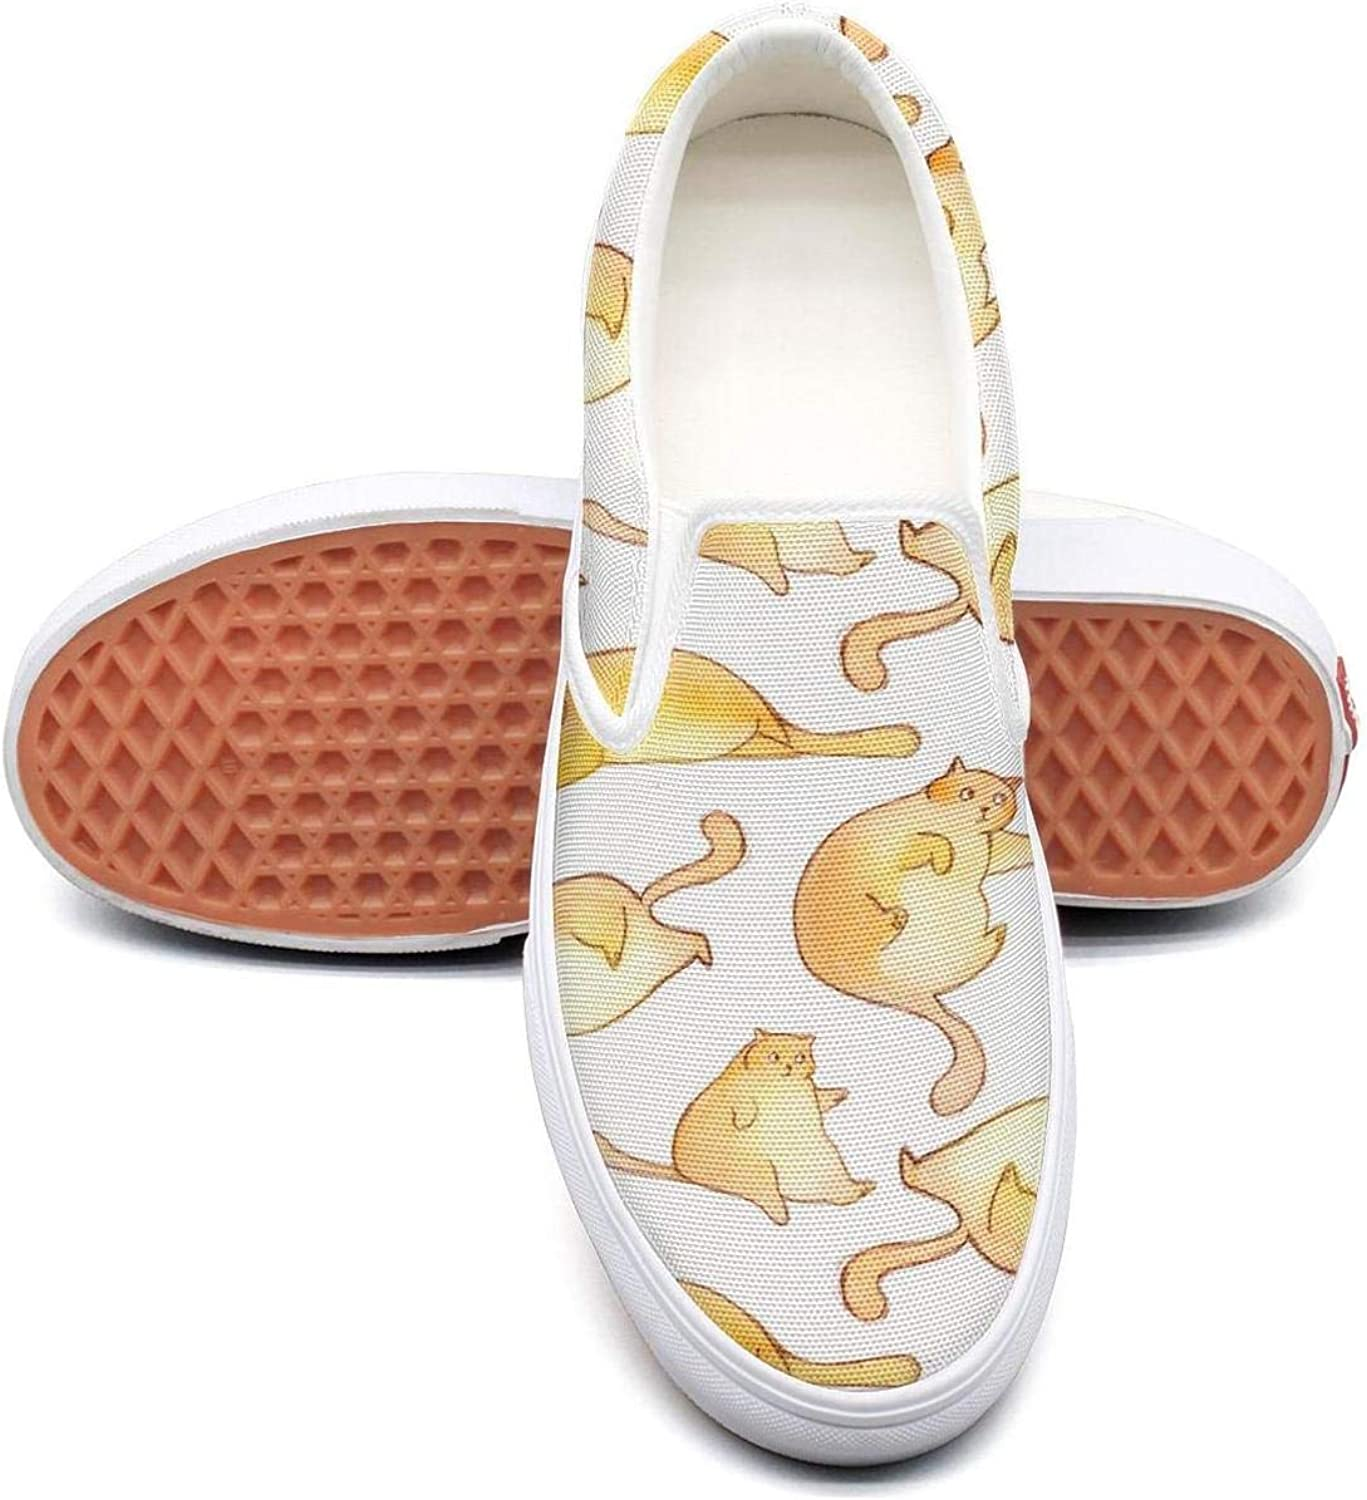 Sernfinjdr Women's Fat cat Pattern Fashion Casual Canvas Slip on shoes Lightweight Running Sneakers shoes